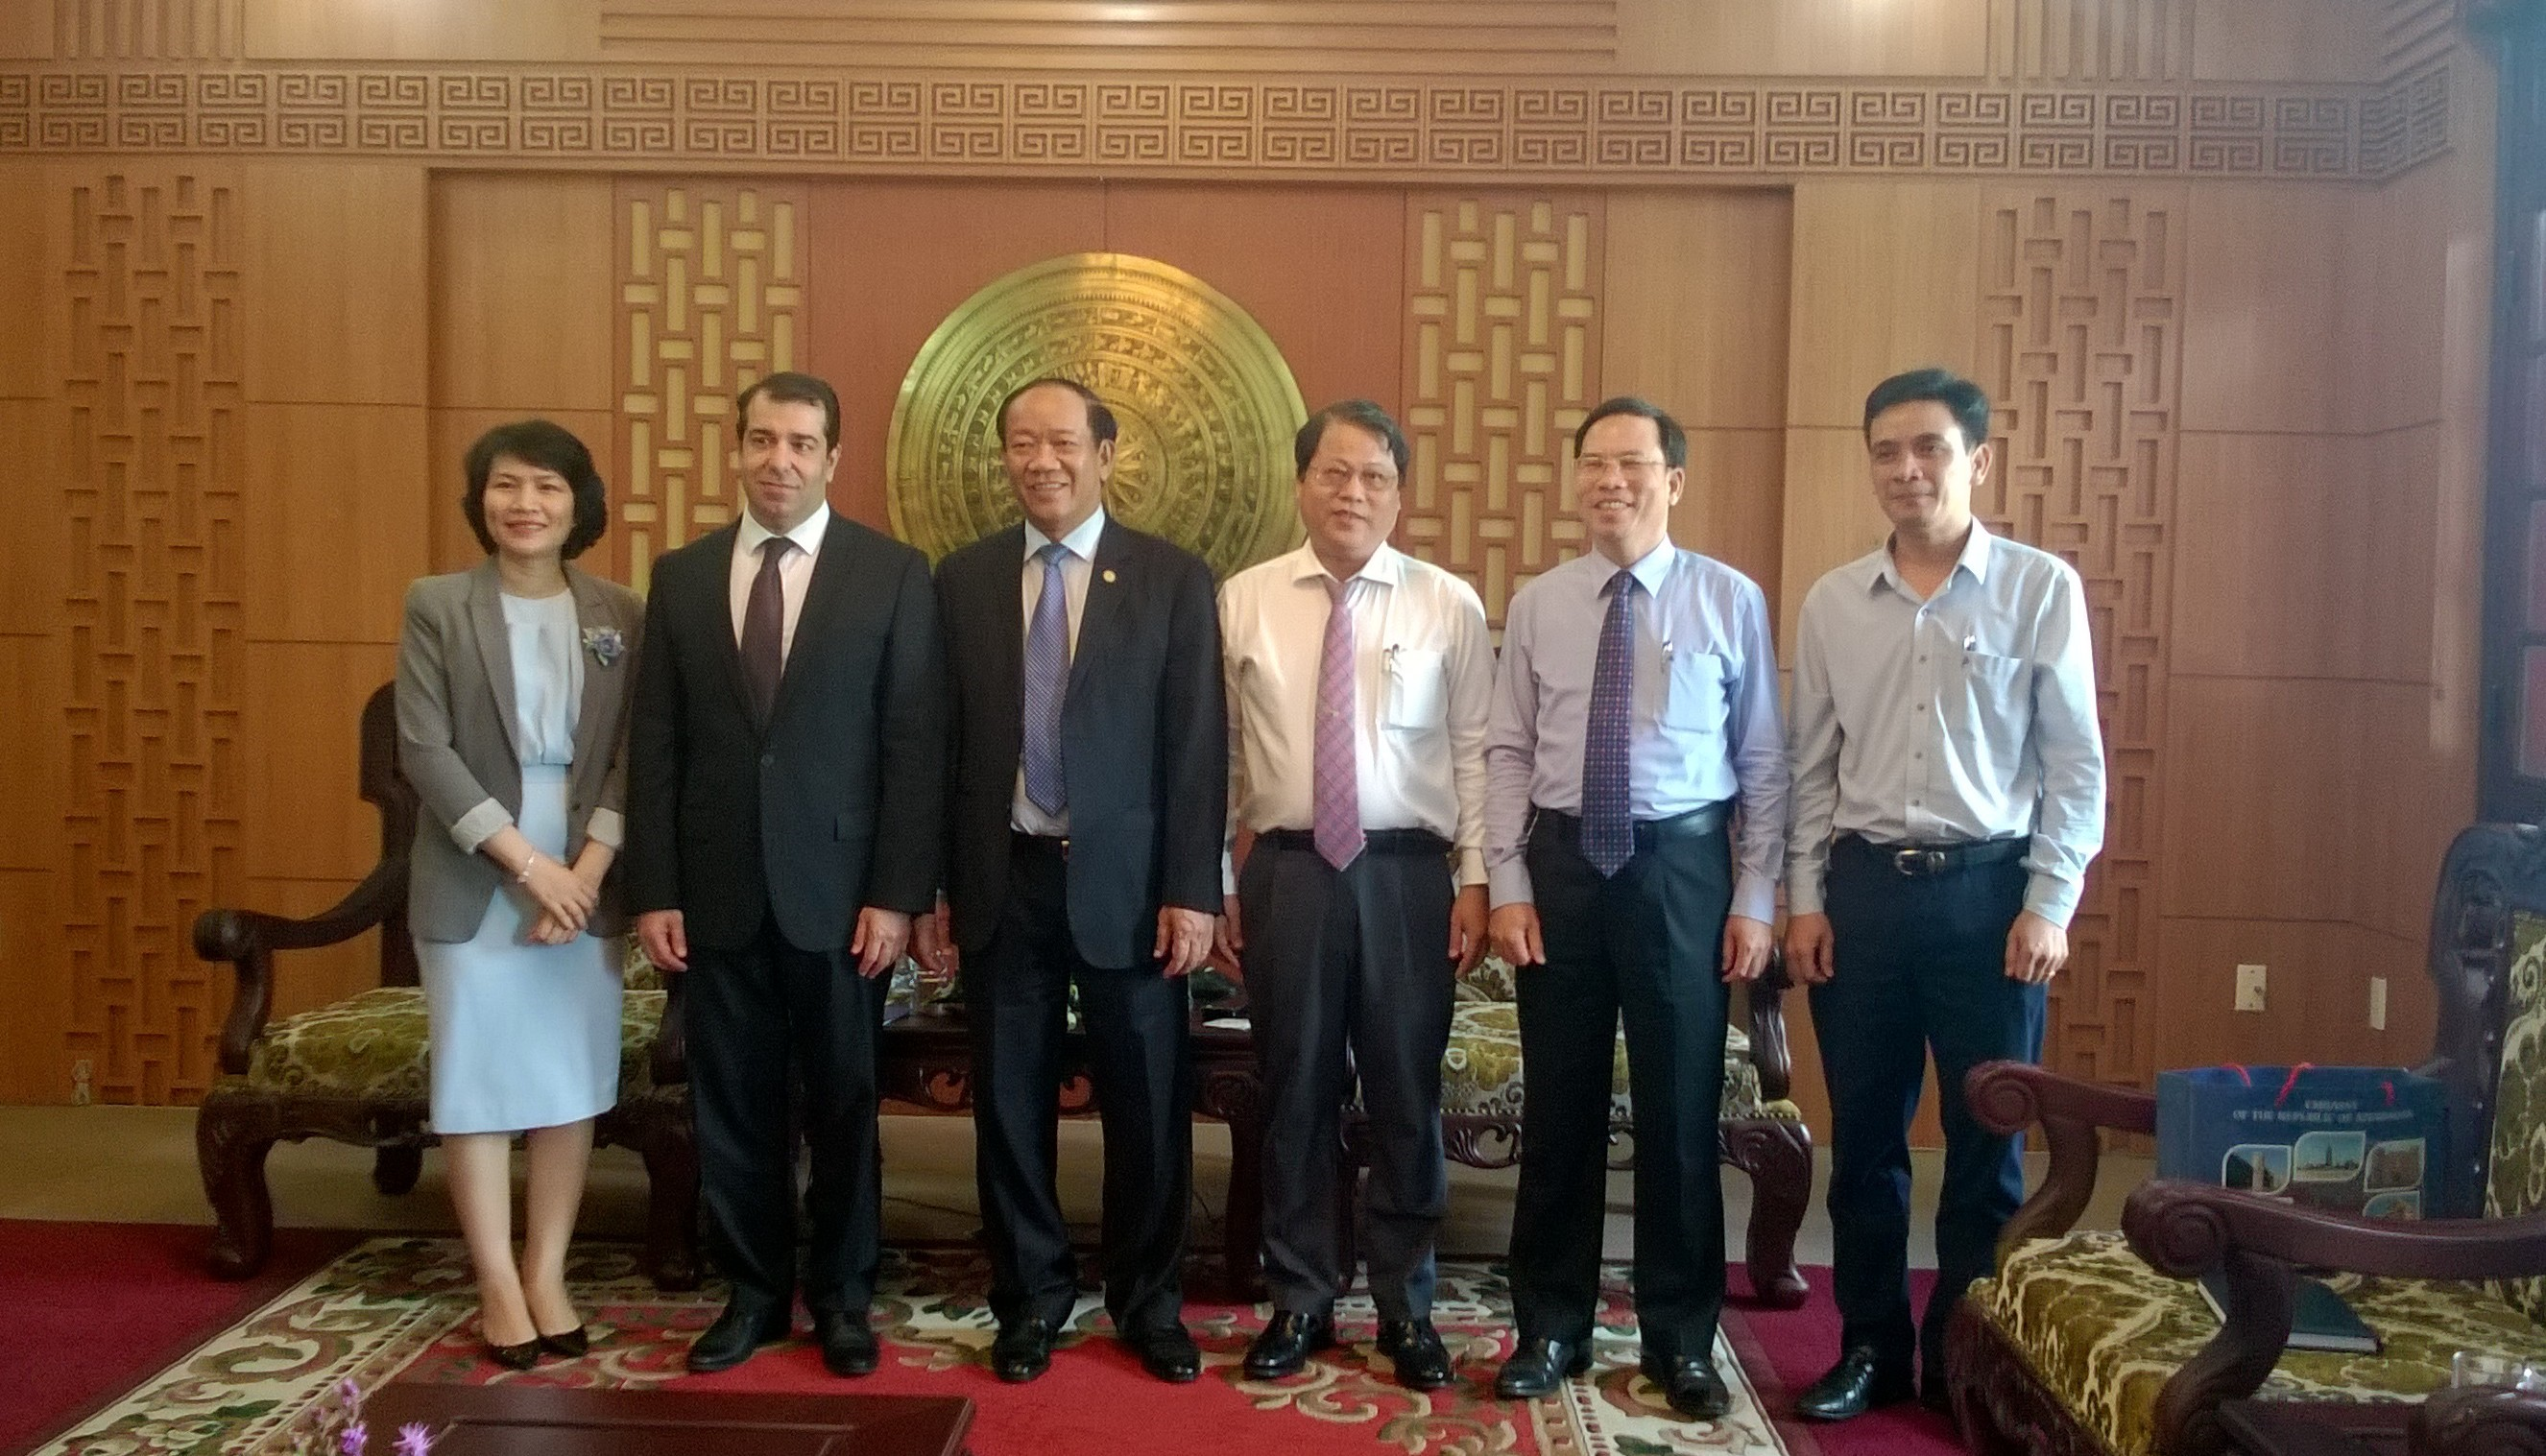 Ambassador Anar Imanov (second from the left) in Quang Nam province